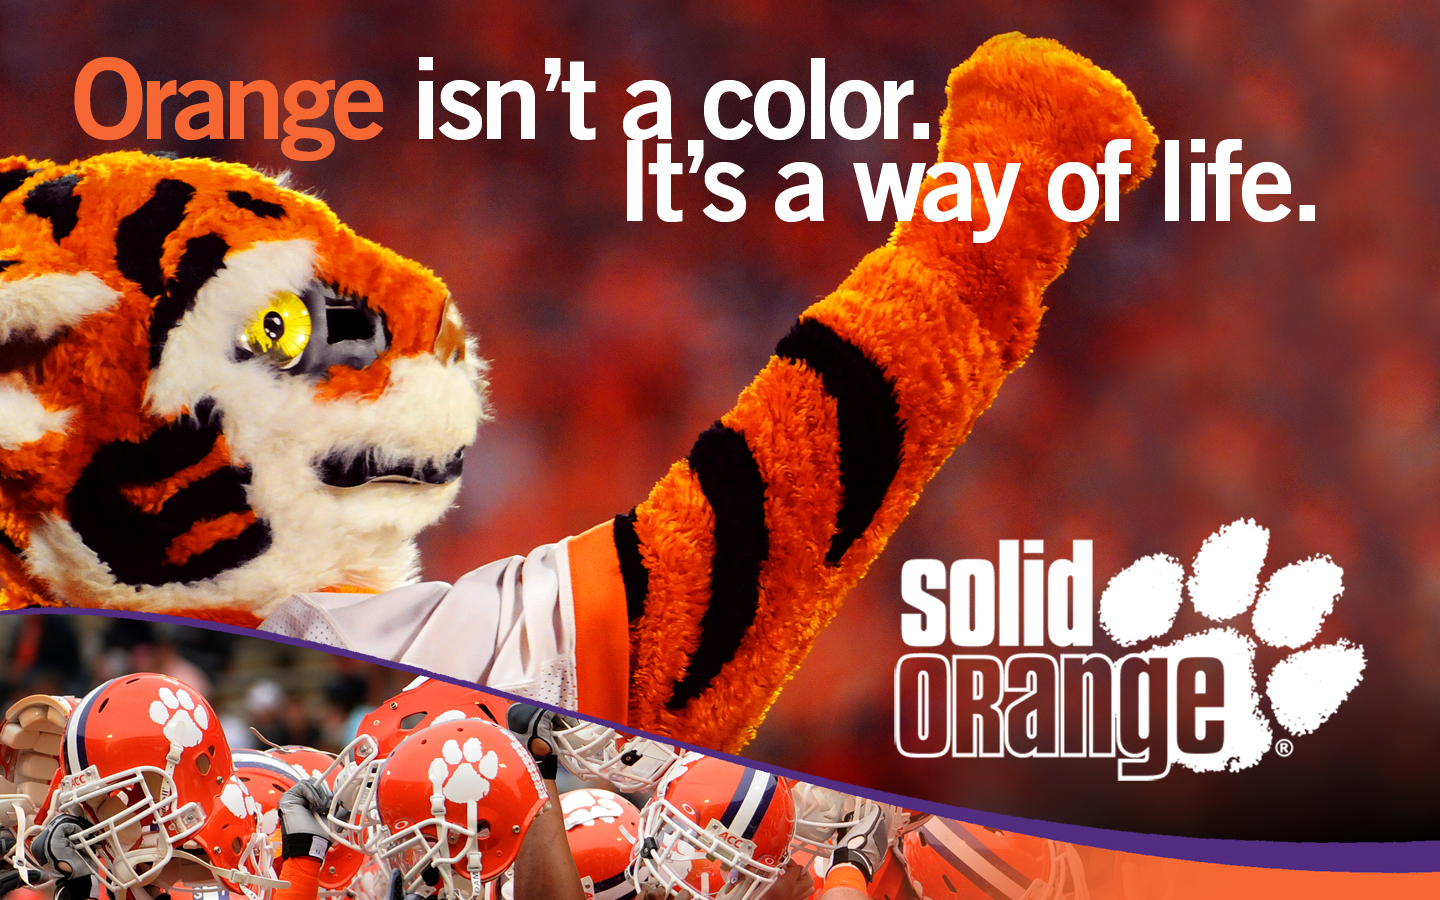 Clemson University Solid Orange 1440x900